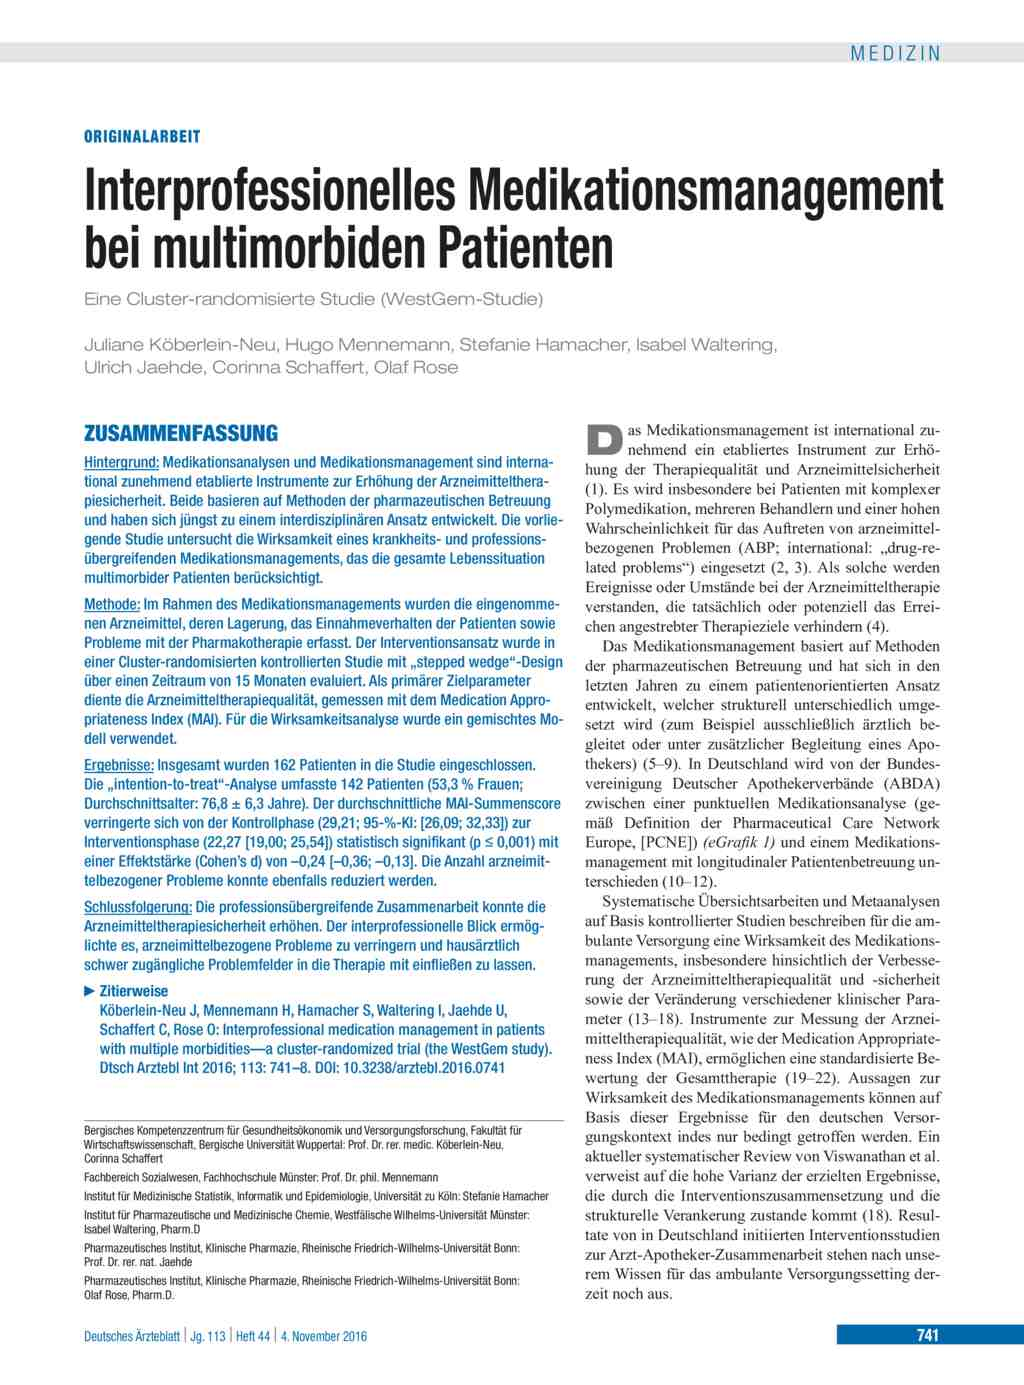 Interprofessionelles Medikationsmanagement bei multimorbiden Patienten